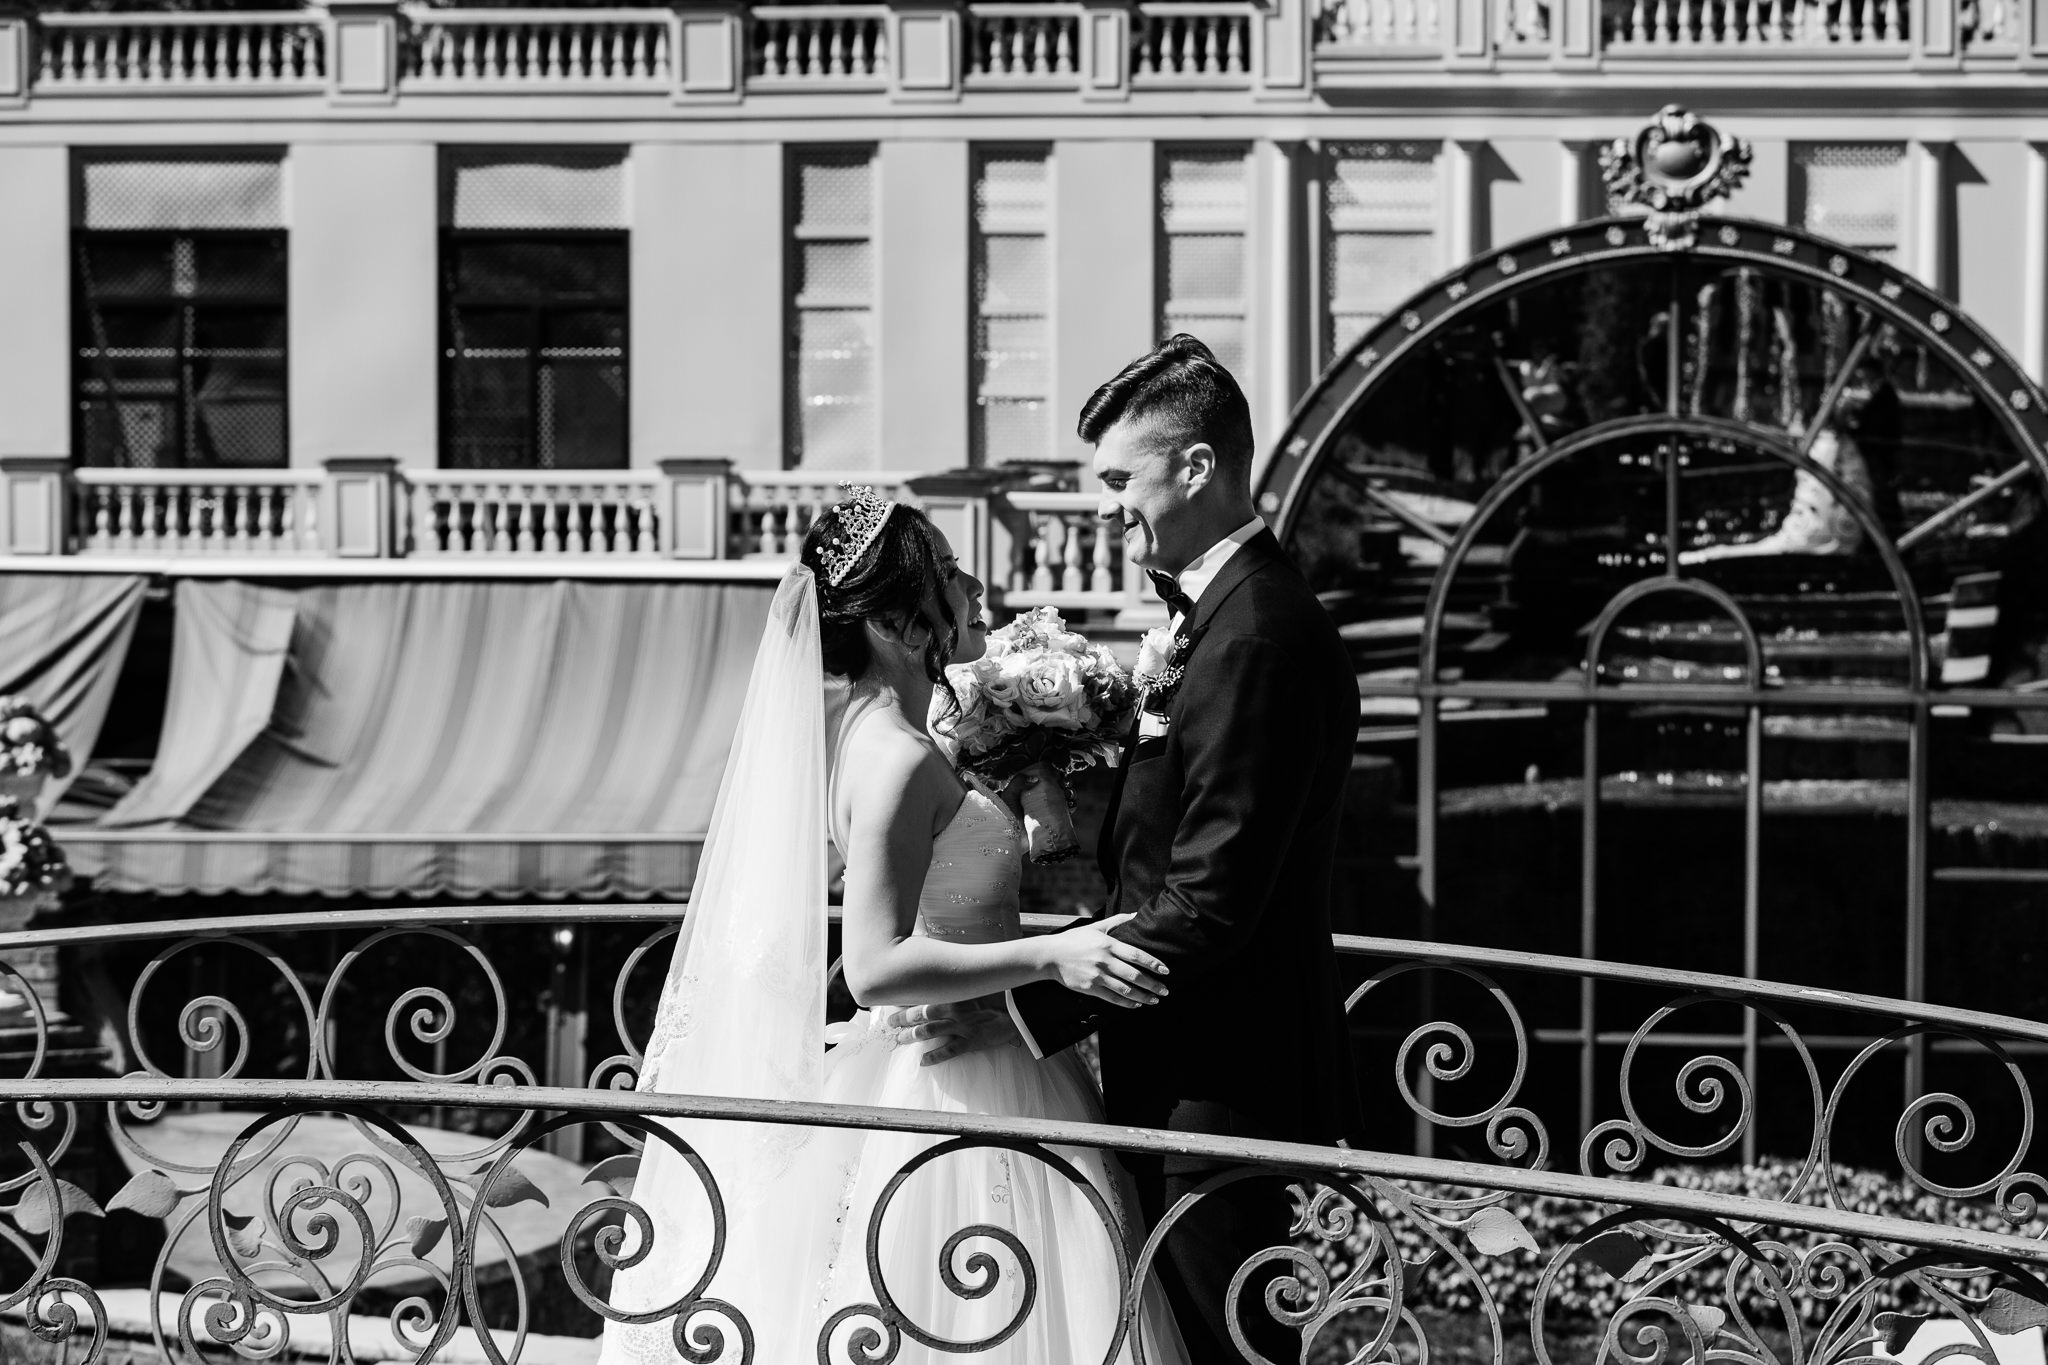 NJ_WEDDING_PHOTOGRAPHER_TLMZ_37360_24.jpg